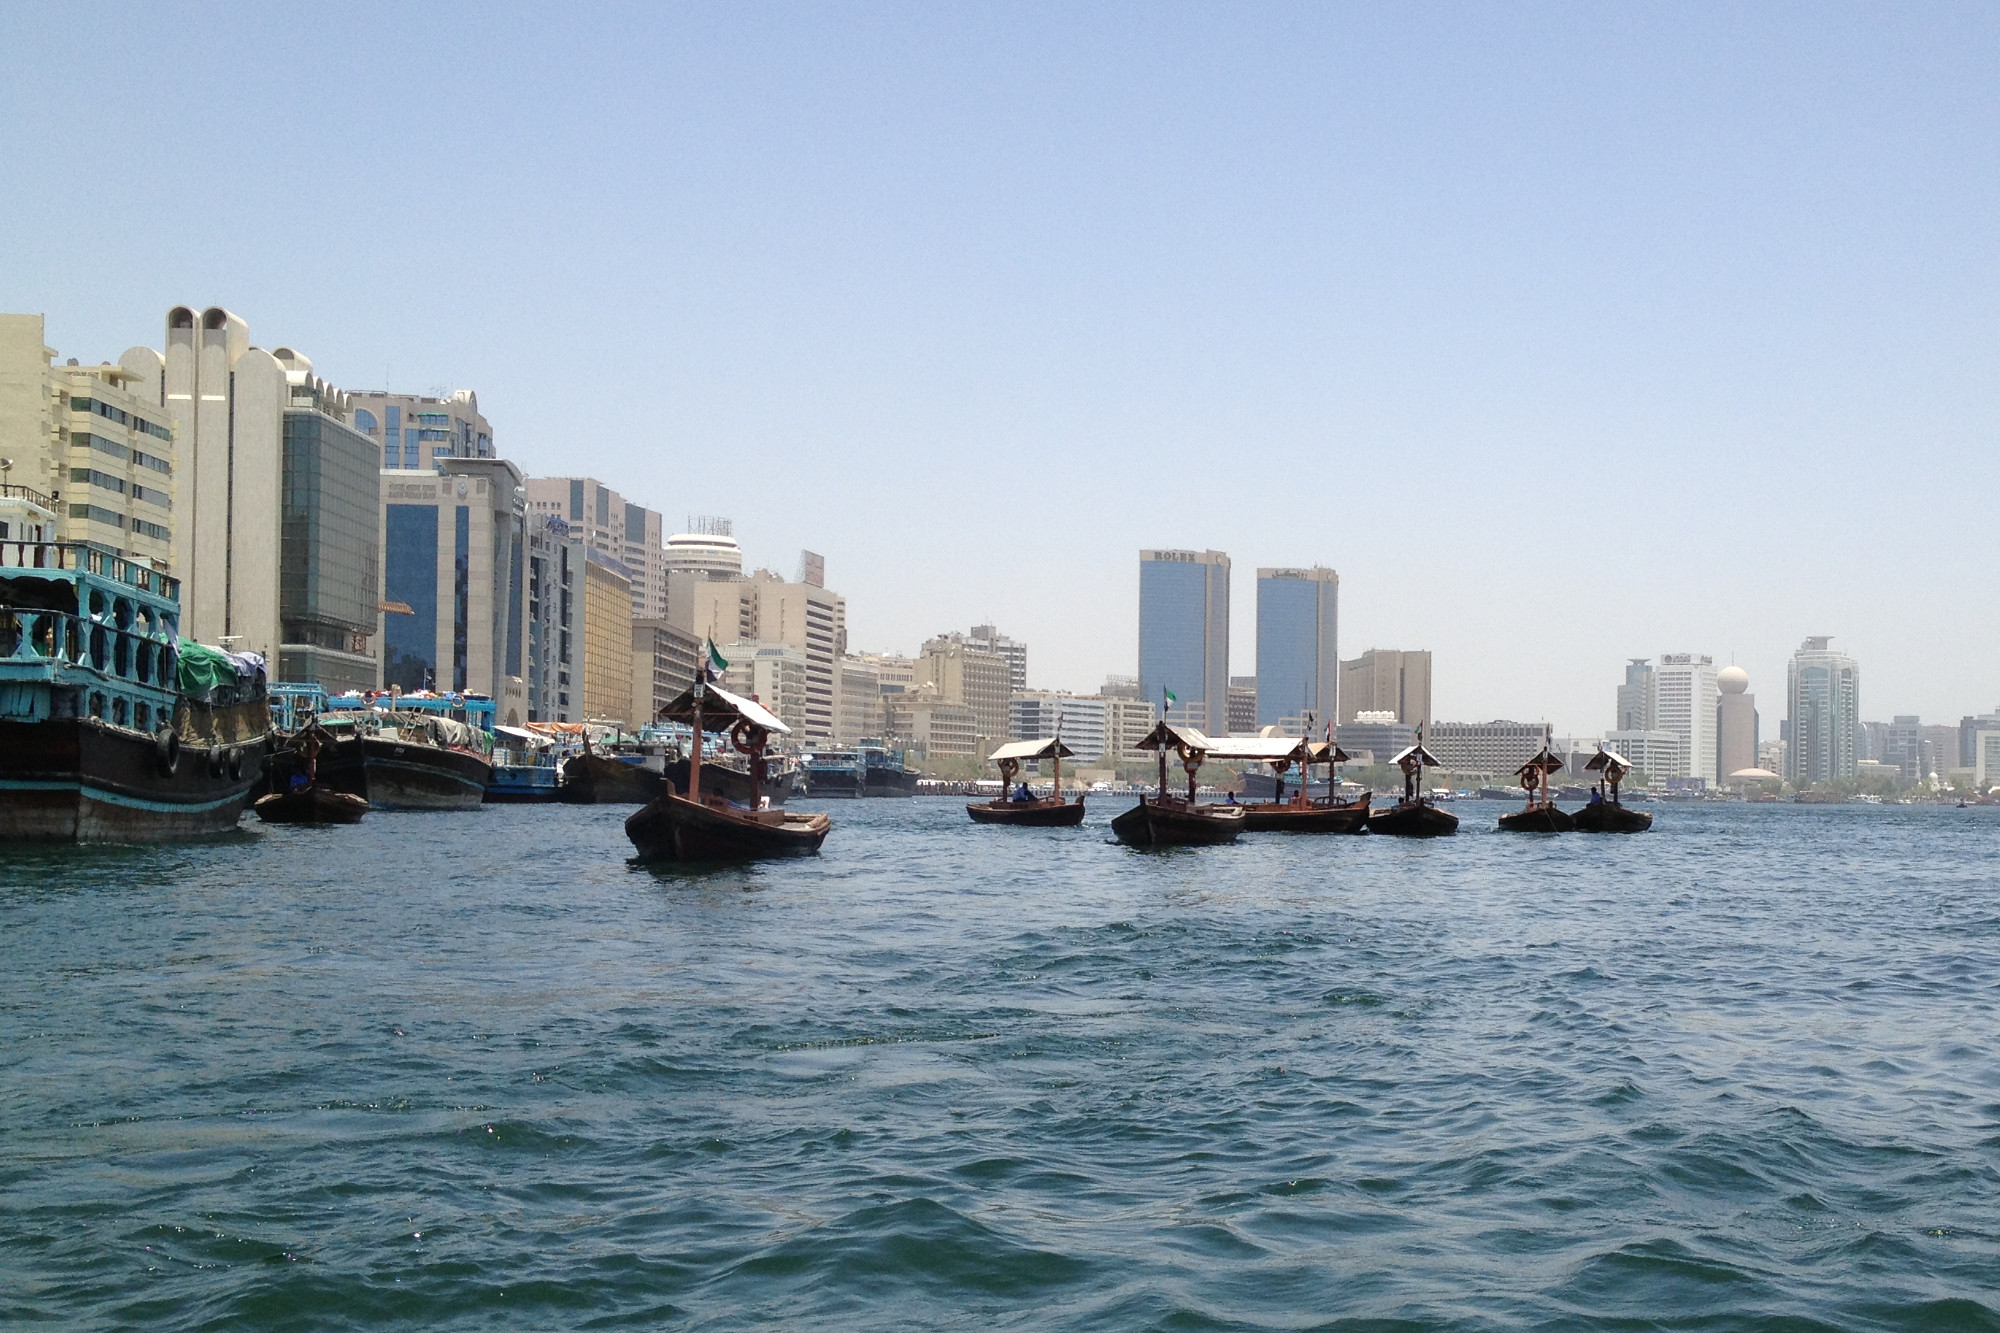 dubai creek is the famous tourist attraction in dubai